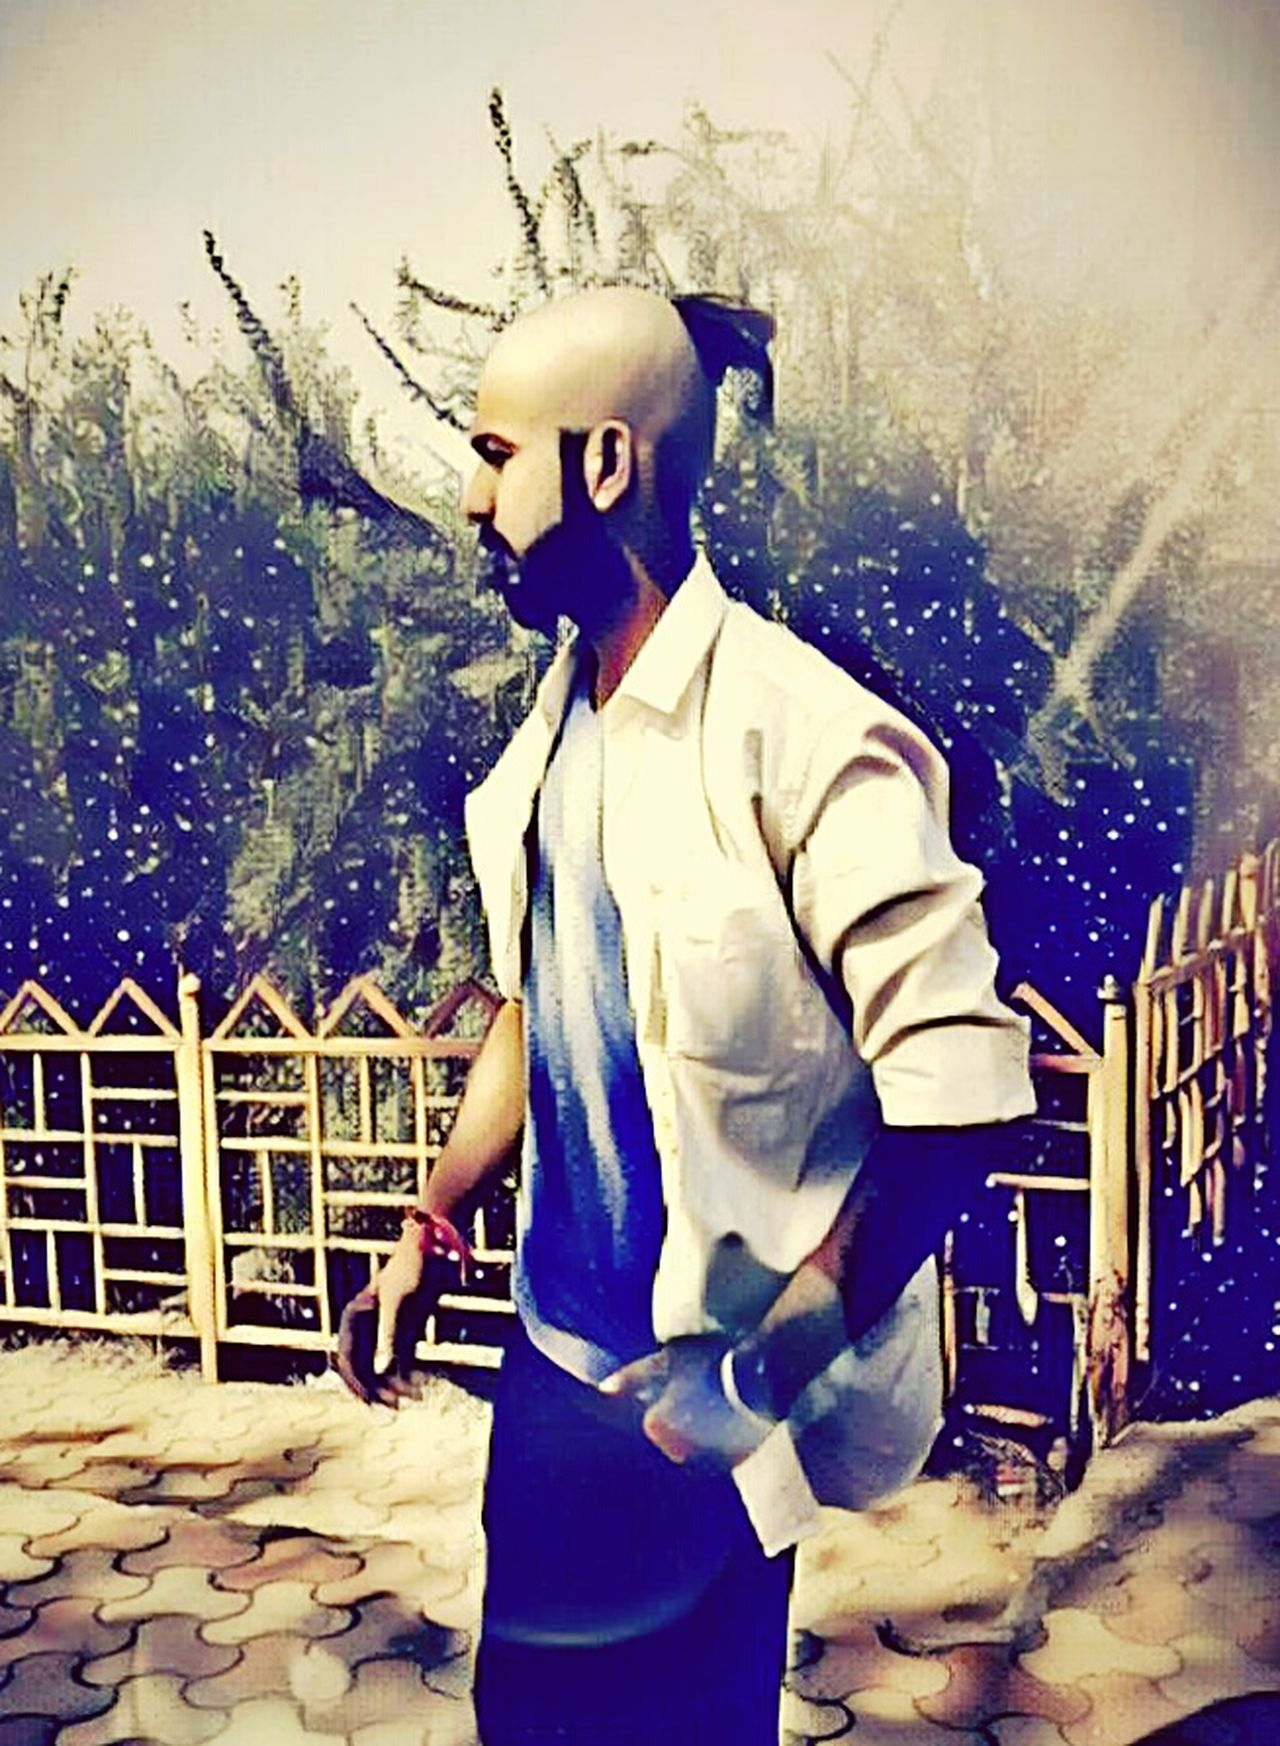 Uniqueness Hackerpandit Saurabh Dubey Stylish Saurabh With Saurabh Sad Boy Sad & Lonely Alone In The World Emptineess Attitude One Person Gangster Ganster Of Love Looking Into The Past Dangerous Lion King  Fashion Style That's Me Hacker Hackers